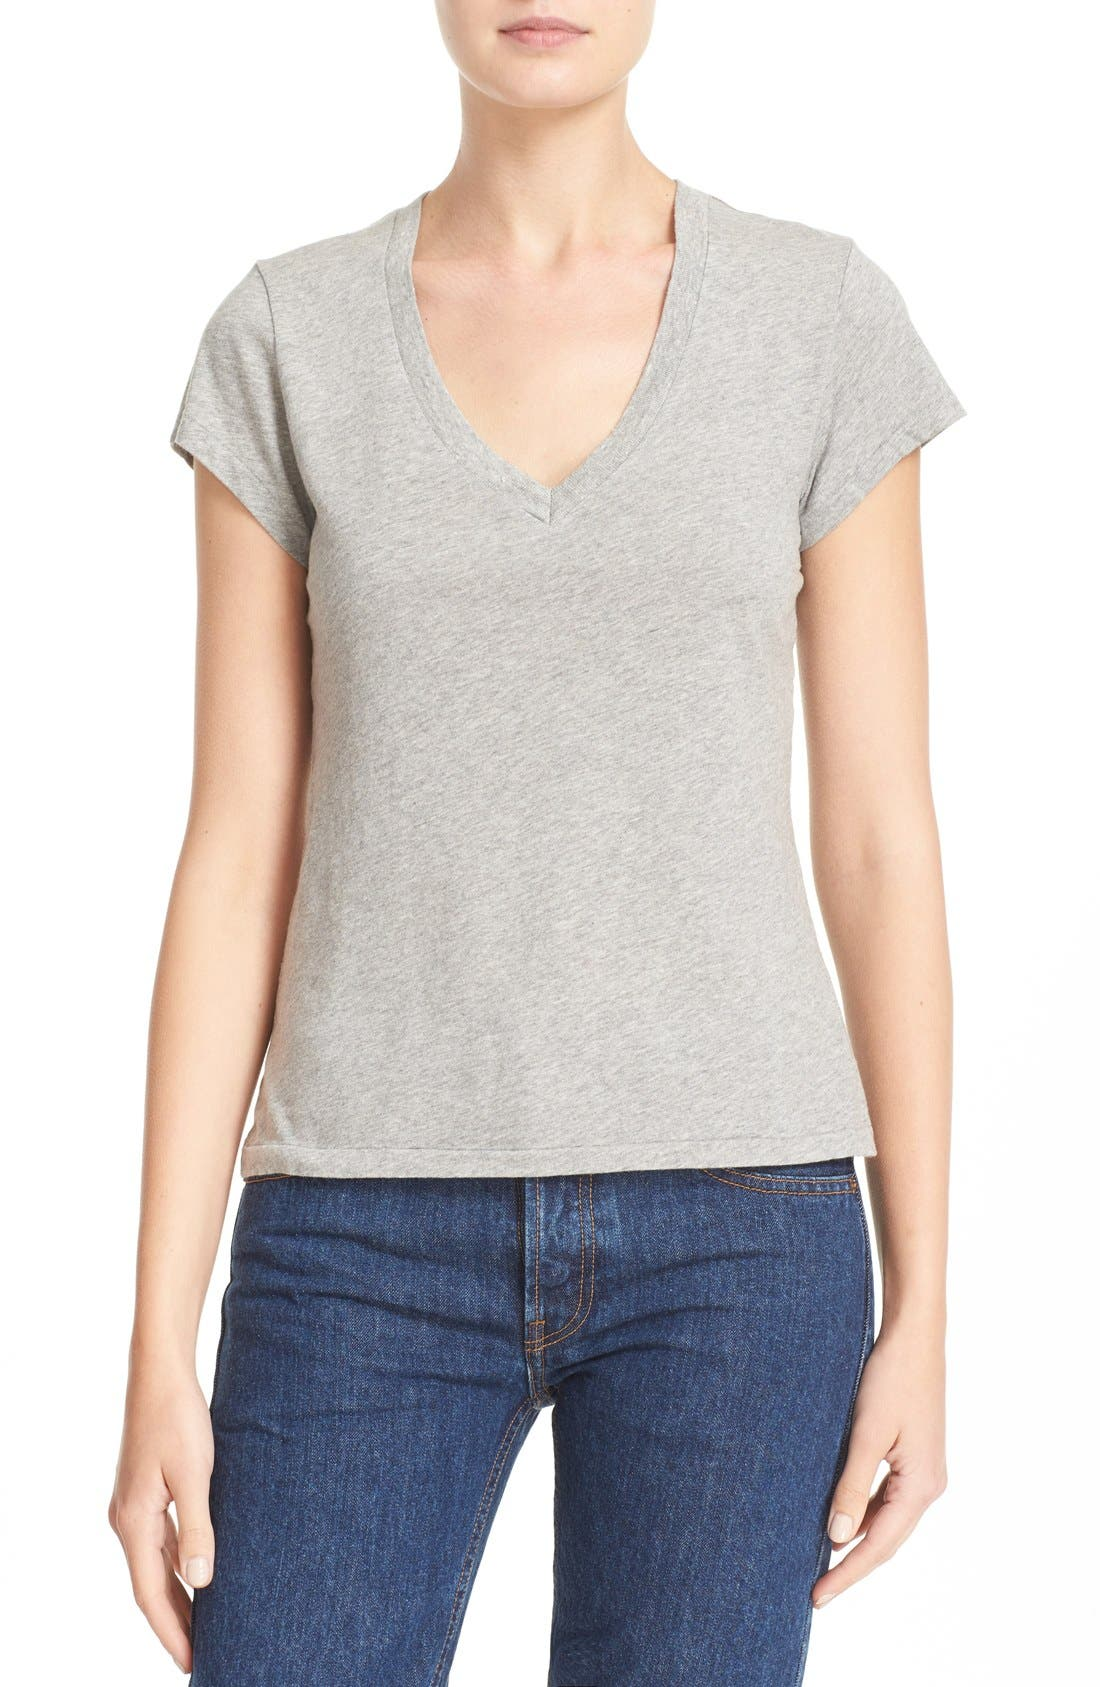 RE/DONE x Hanes 1960s Slim V-Neck Tee